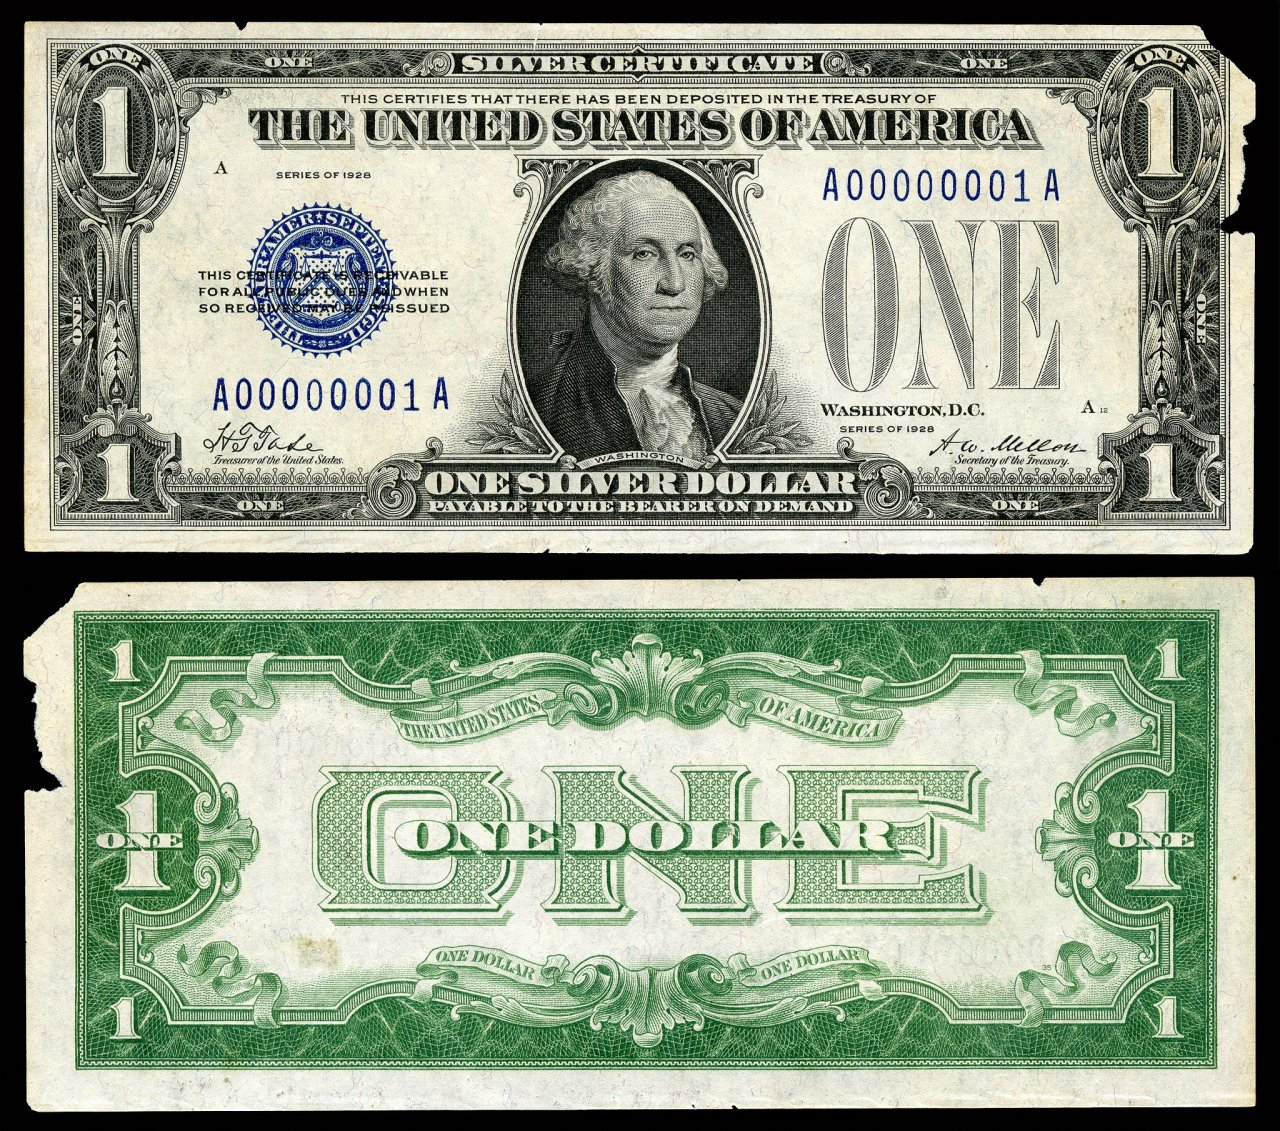 How Much Is A Silver Certificate Worth? | Artifact Collectors